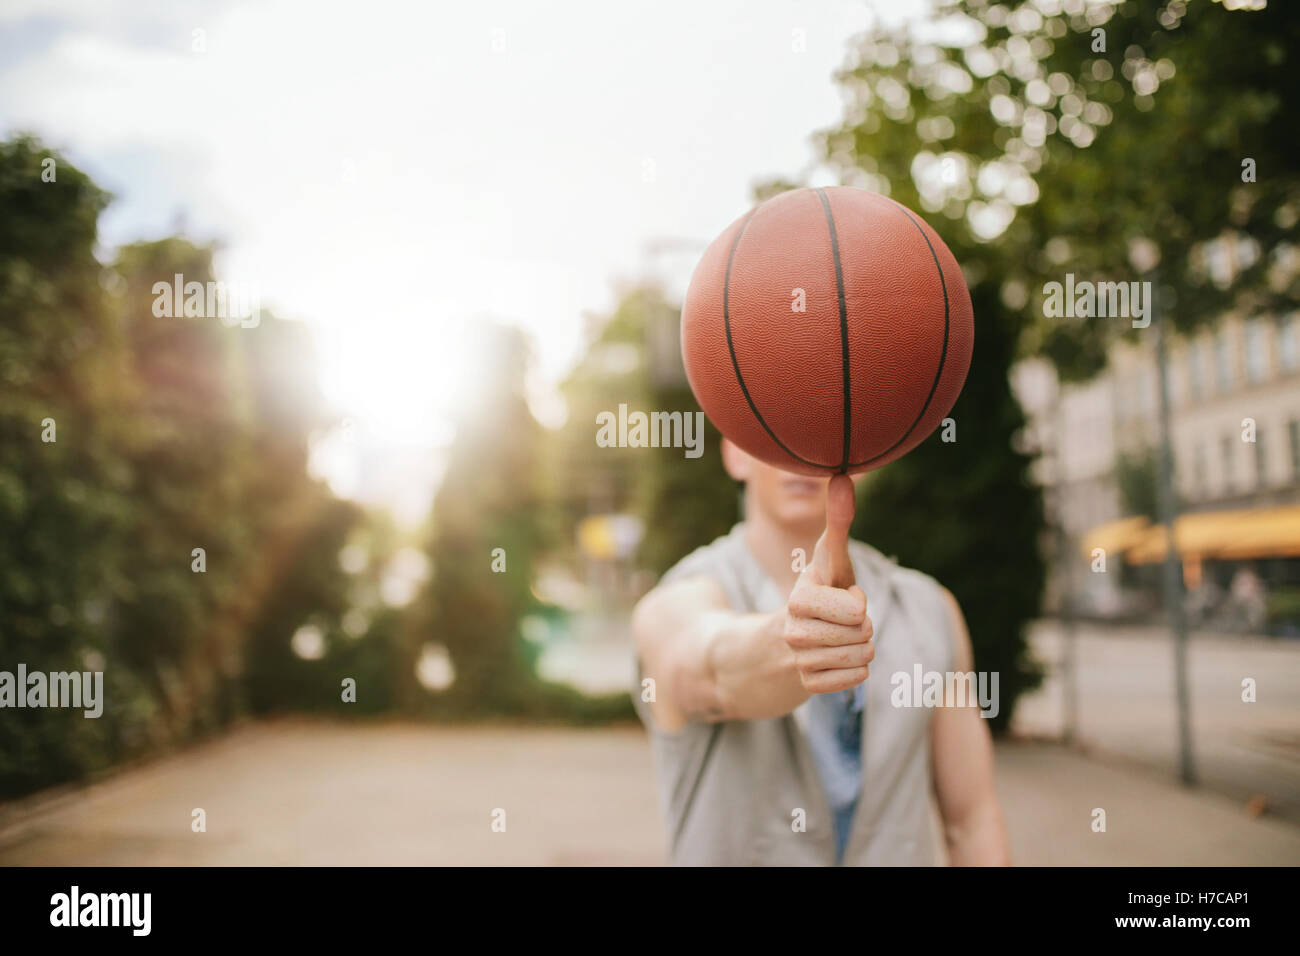 Man balancing basketball on his thumb on outdoor court. Streetball player spinning the ball. Focus on basketball. - Stock Image